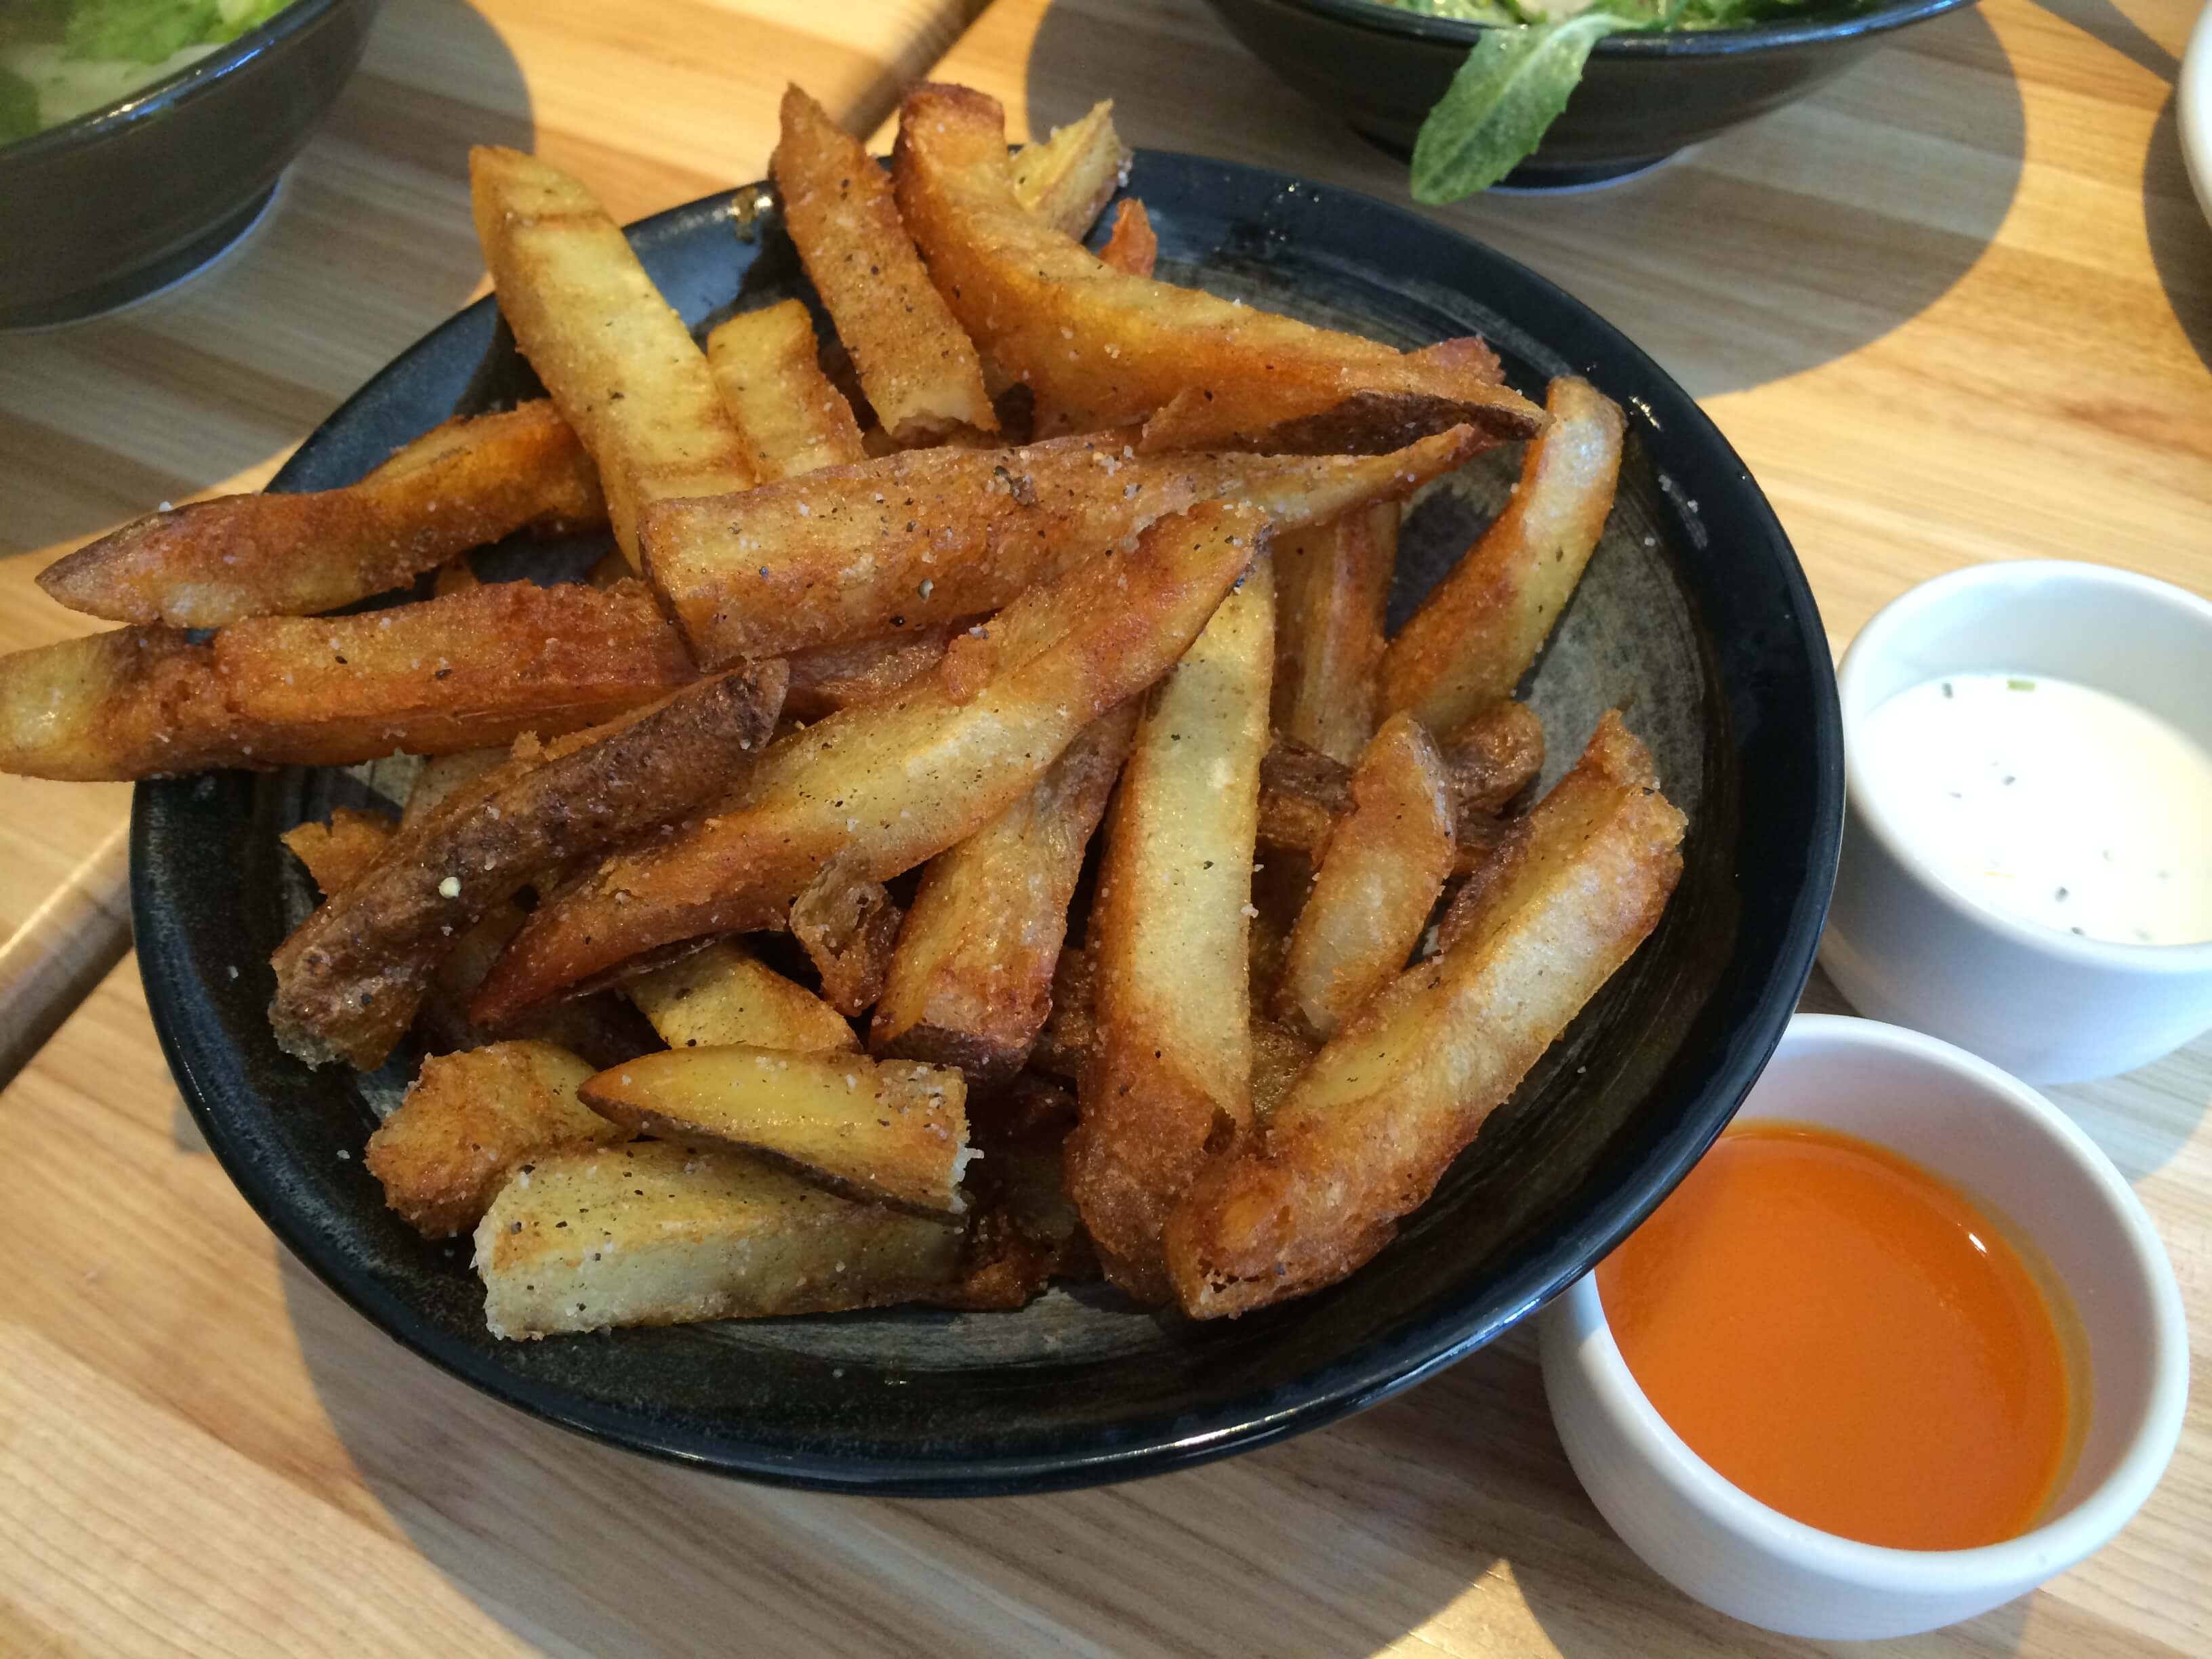 French Fries, served with House Hot Sauce and Chive Creme Fraiche.